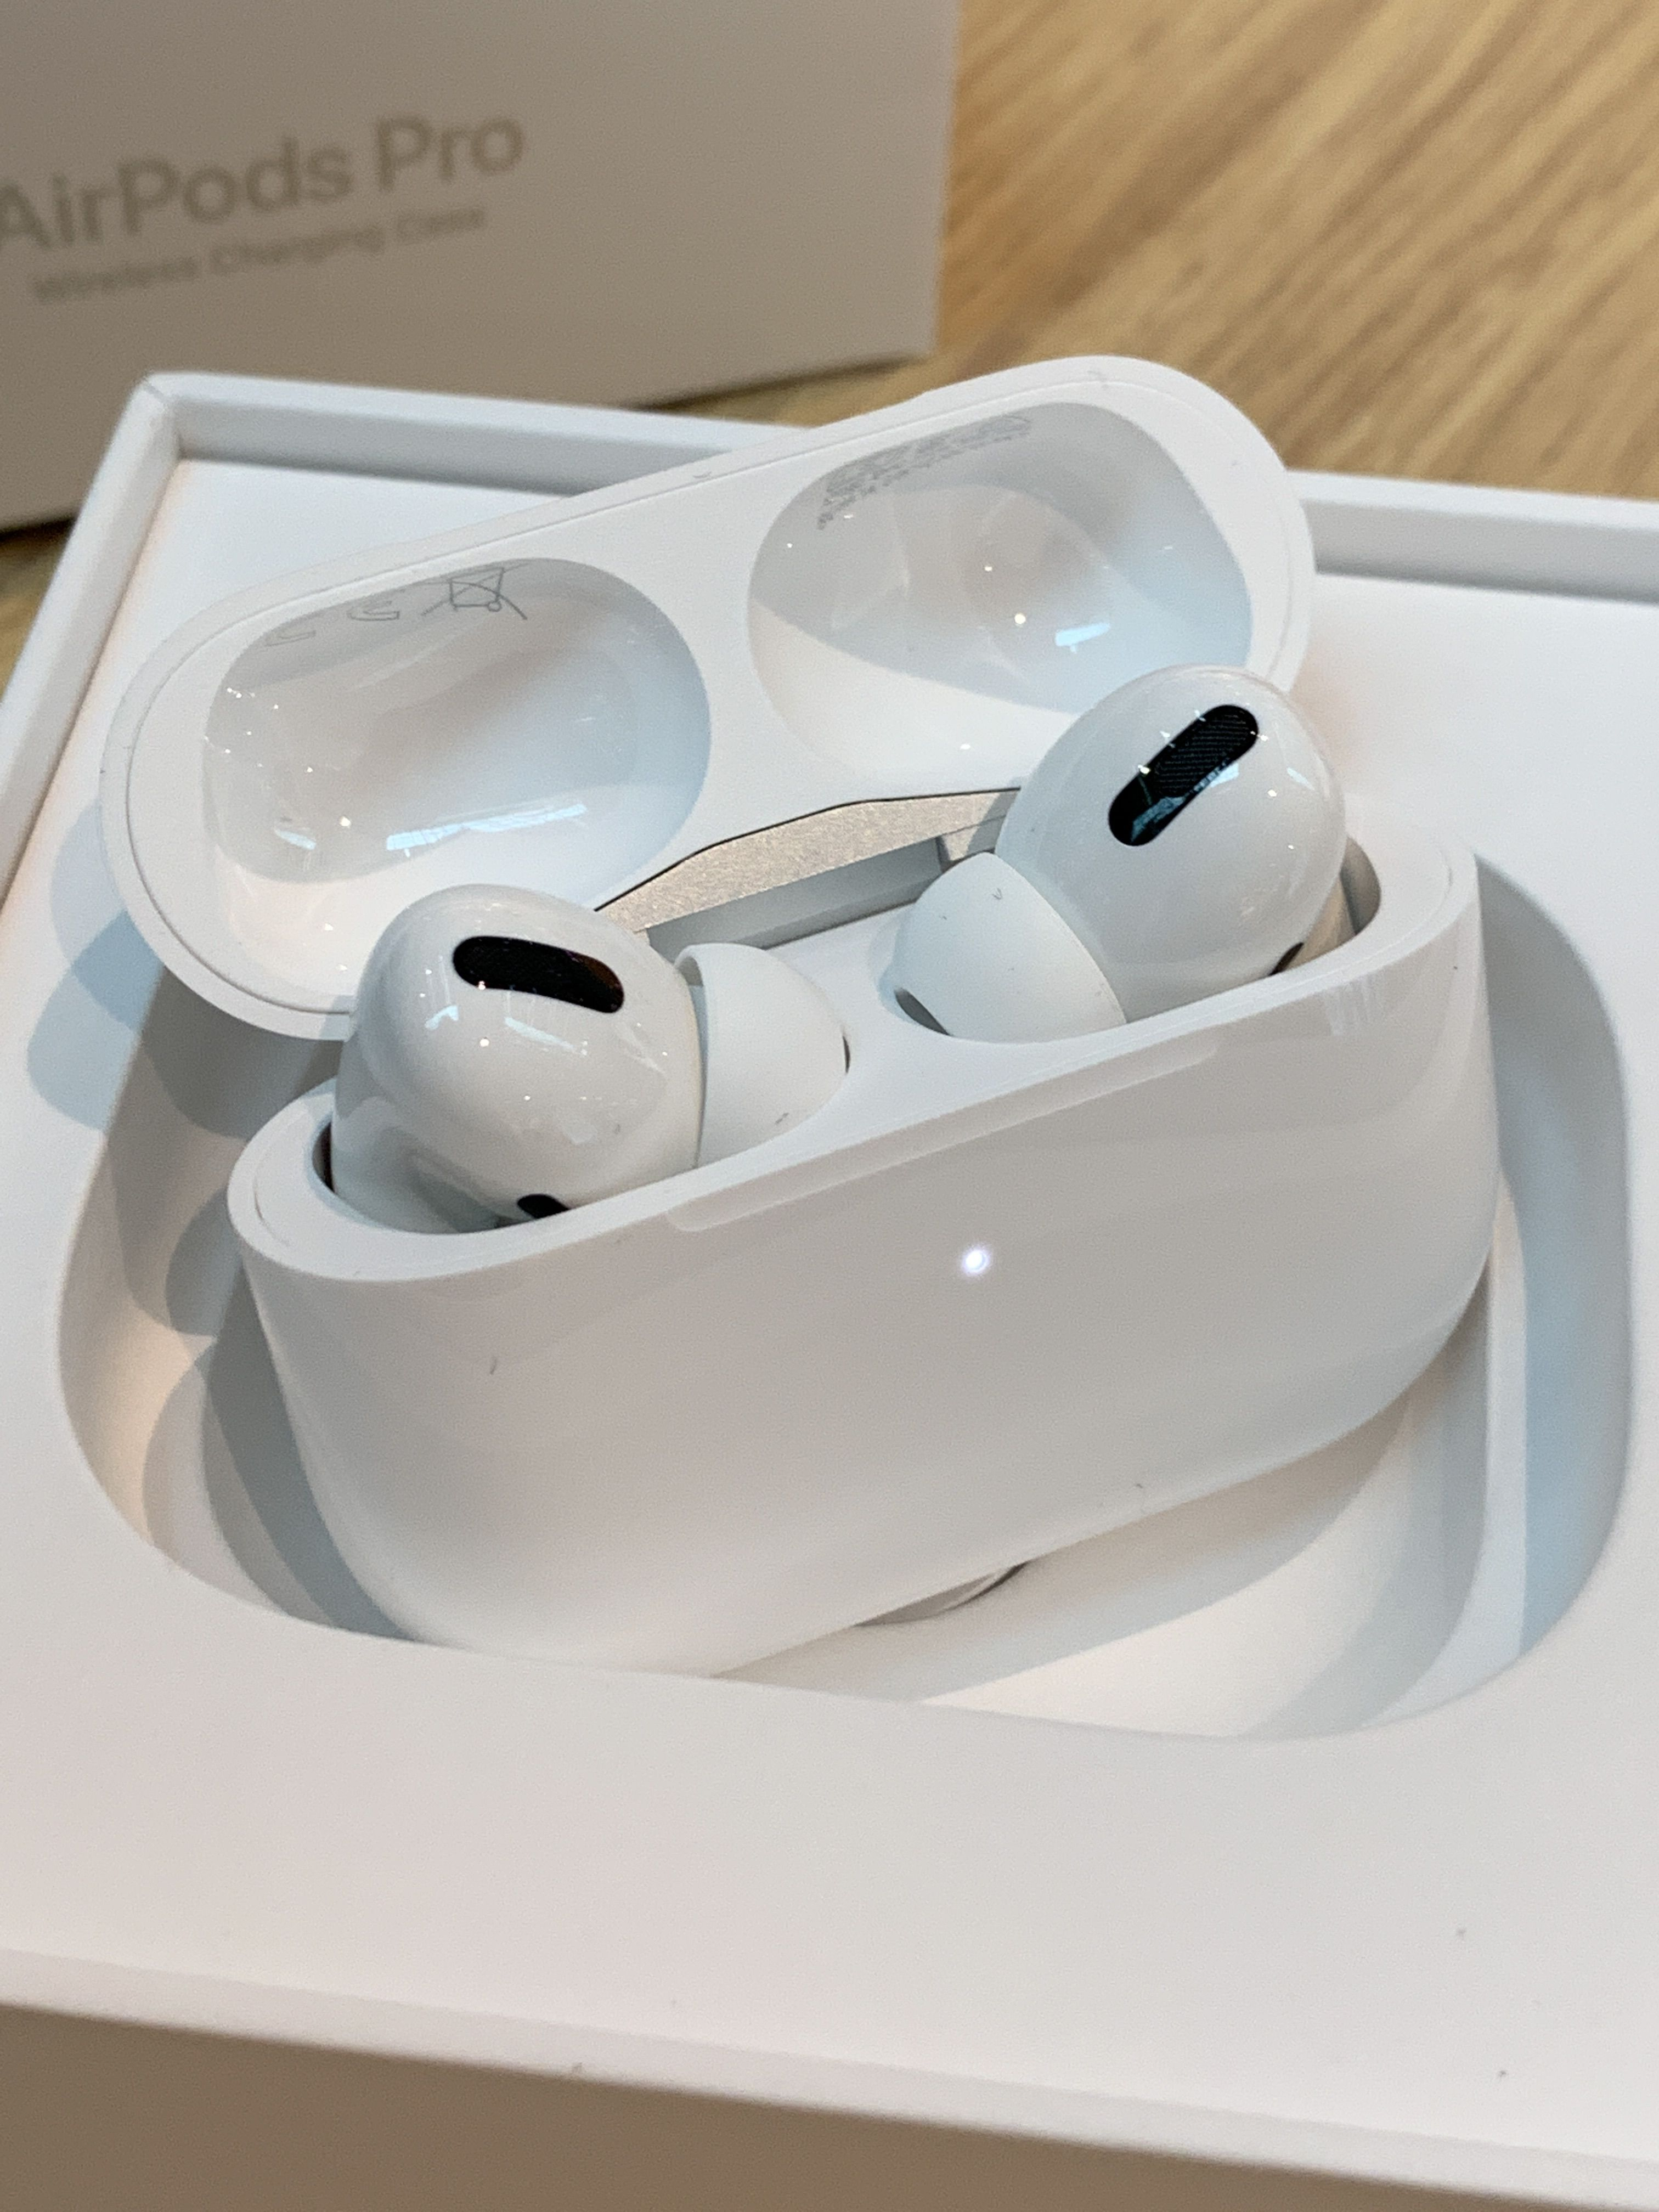 My Apple Airpods Pro Apple Products Airpods Pro Apple Headphone